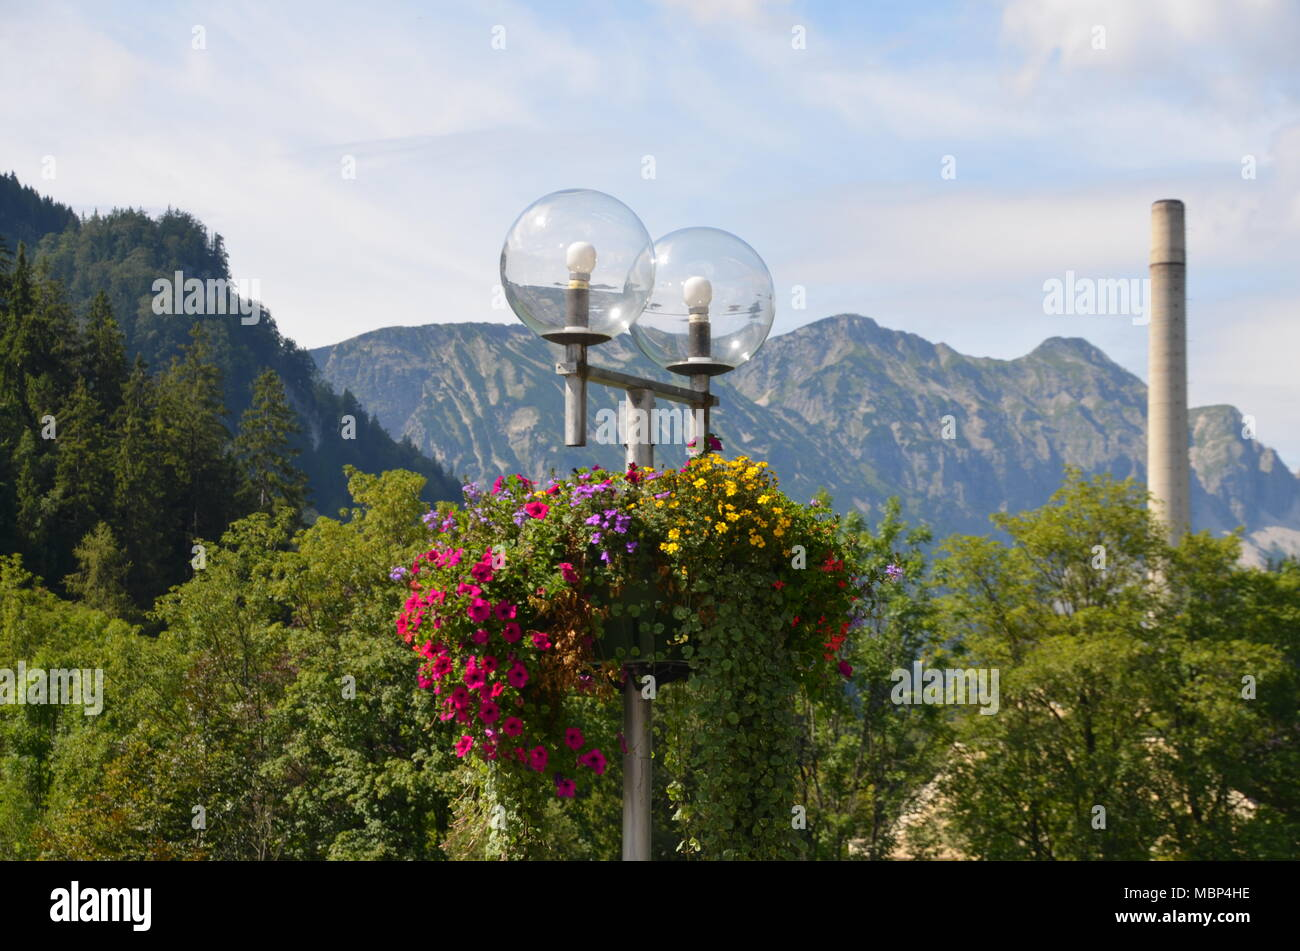 view of the lantern on a bridge over the river Lech with flowers and the Alps in the background, Füssen, Bavaria, Germany - Stock Image